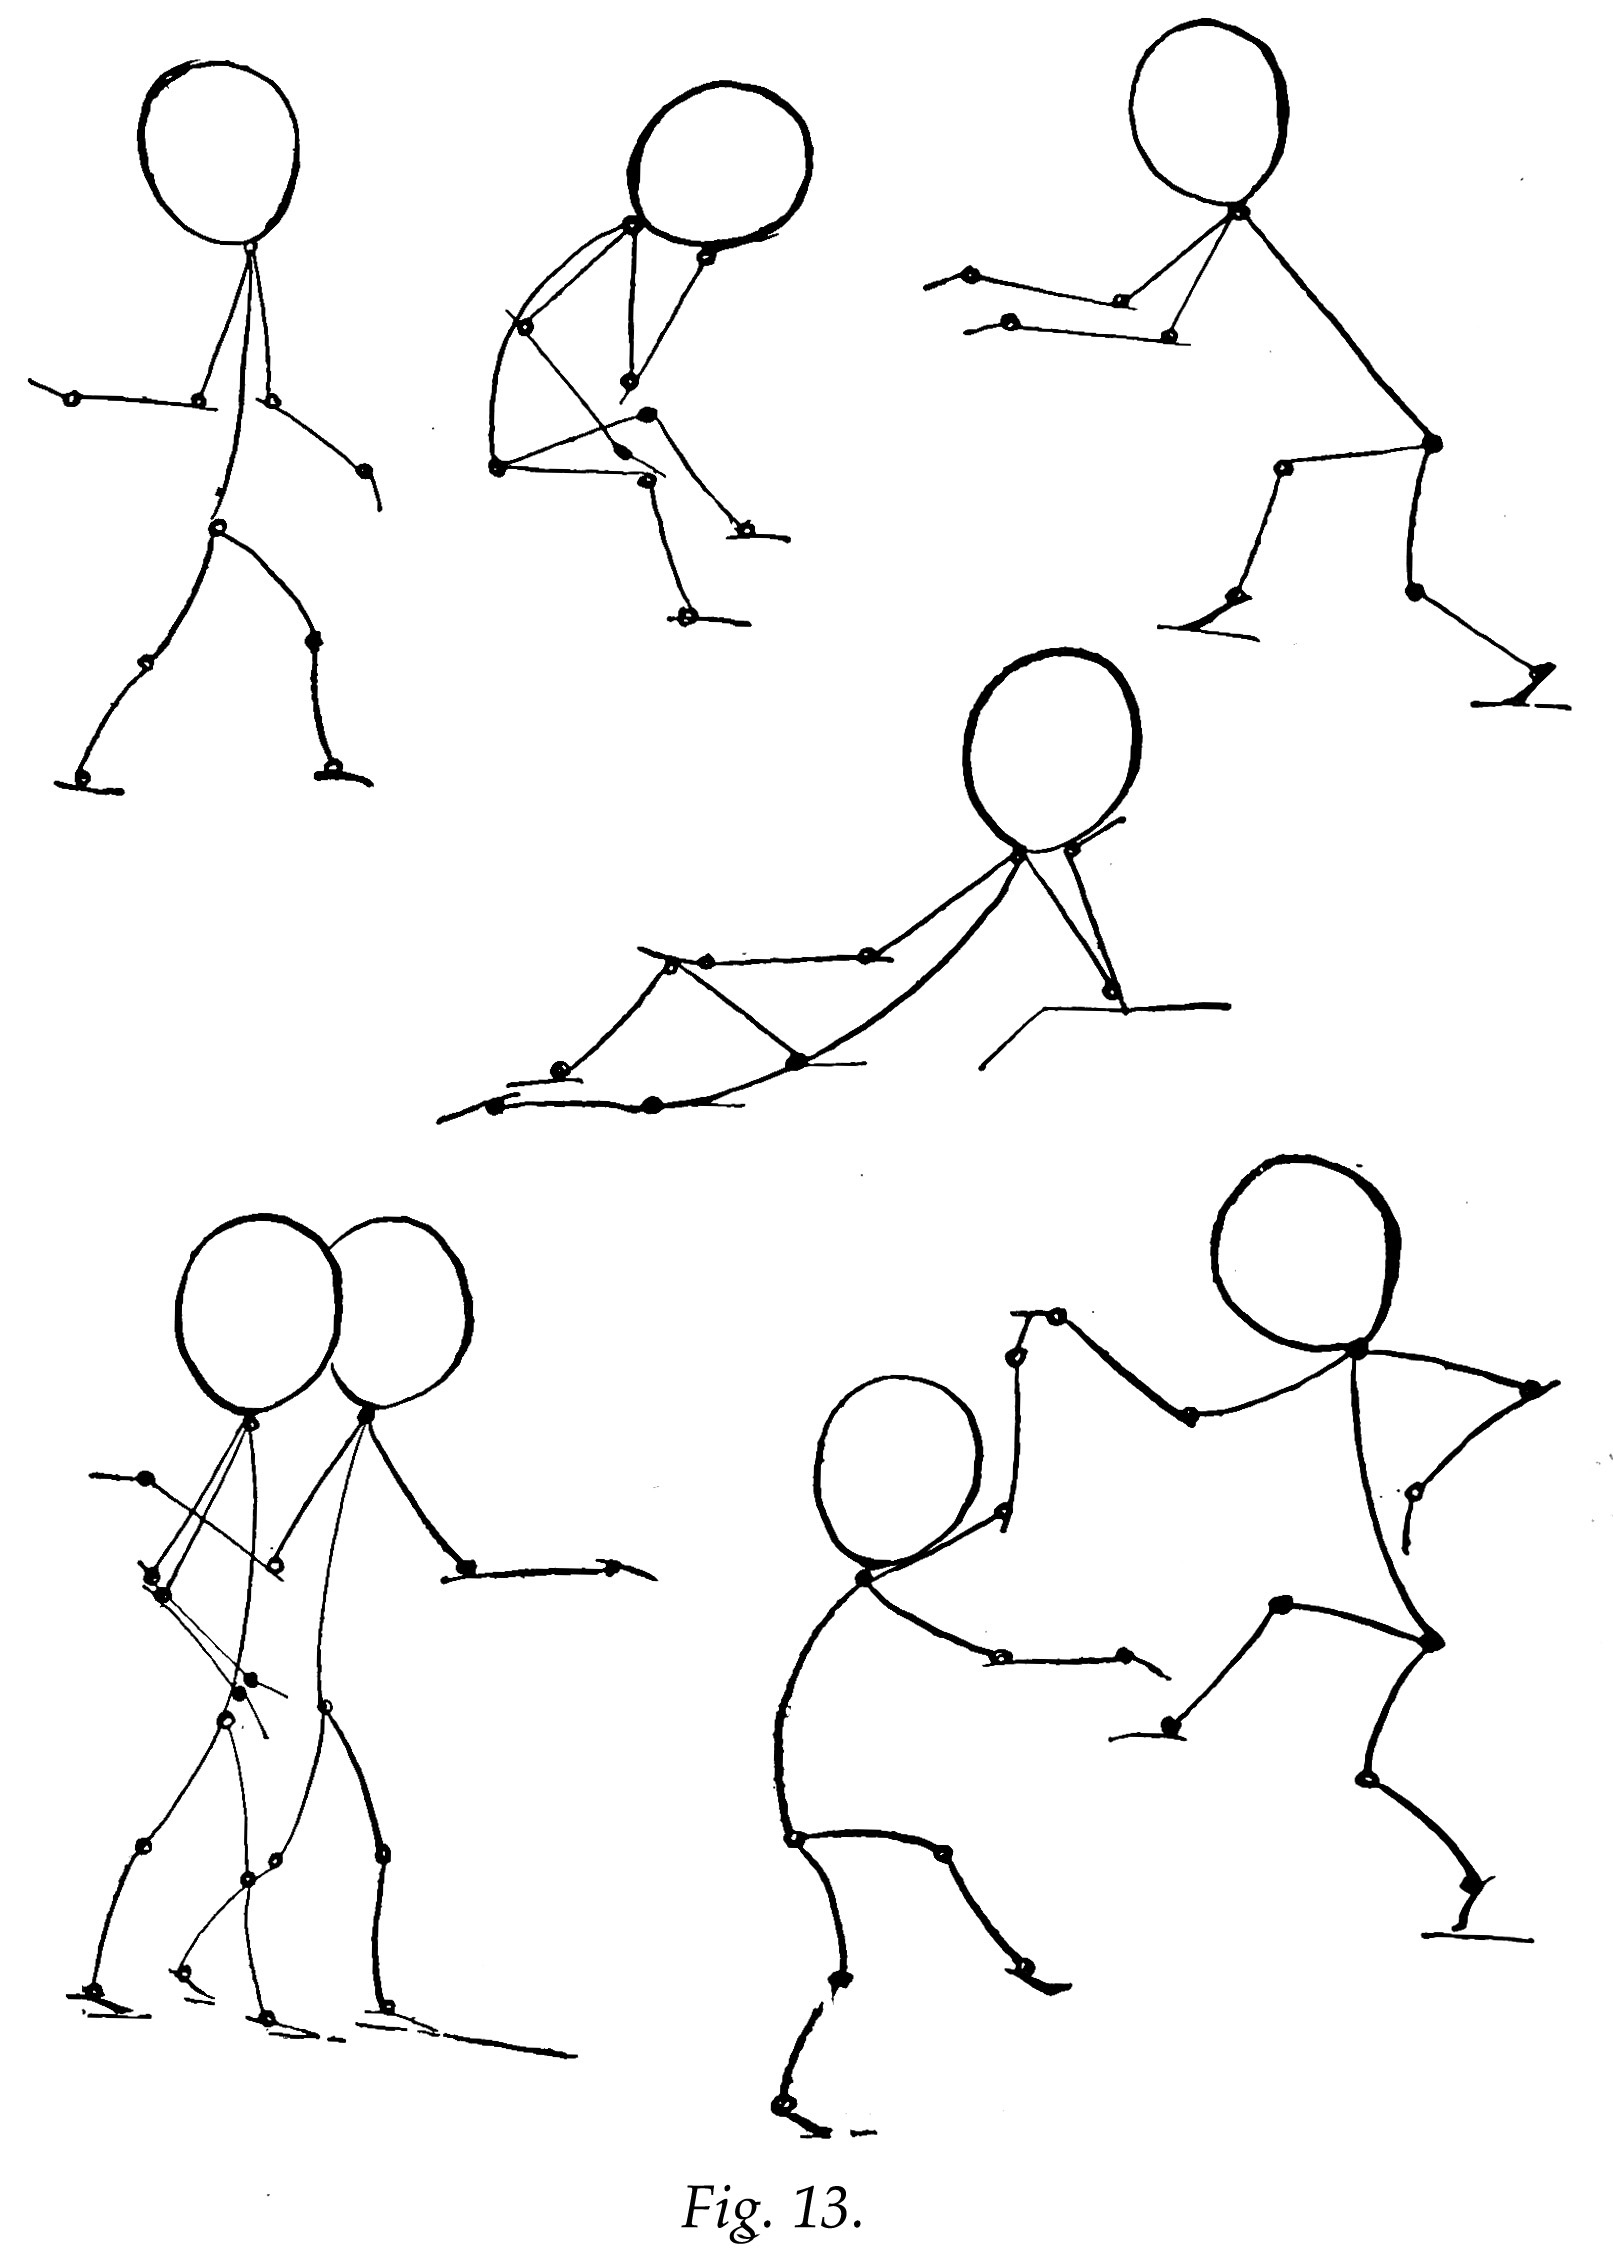 How to Draw Stick People